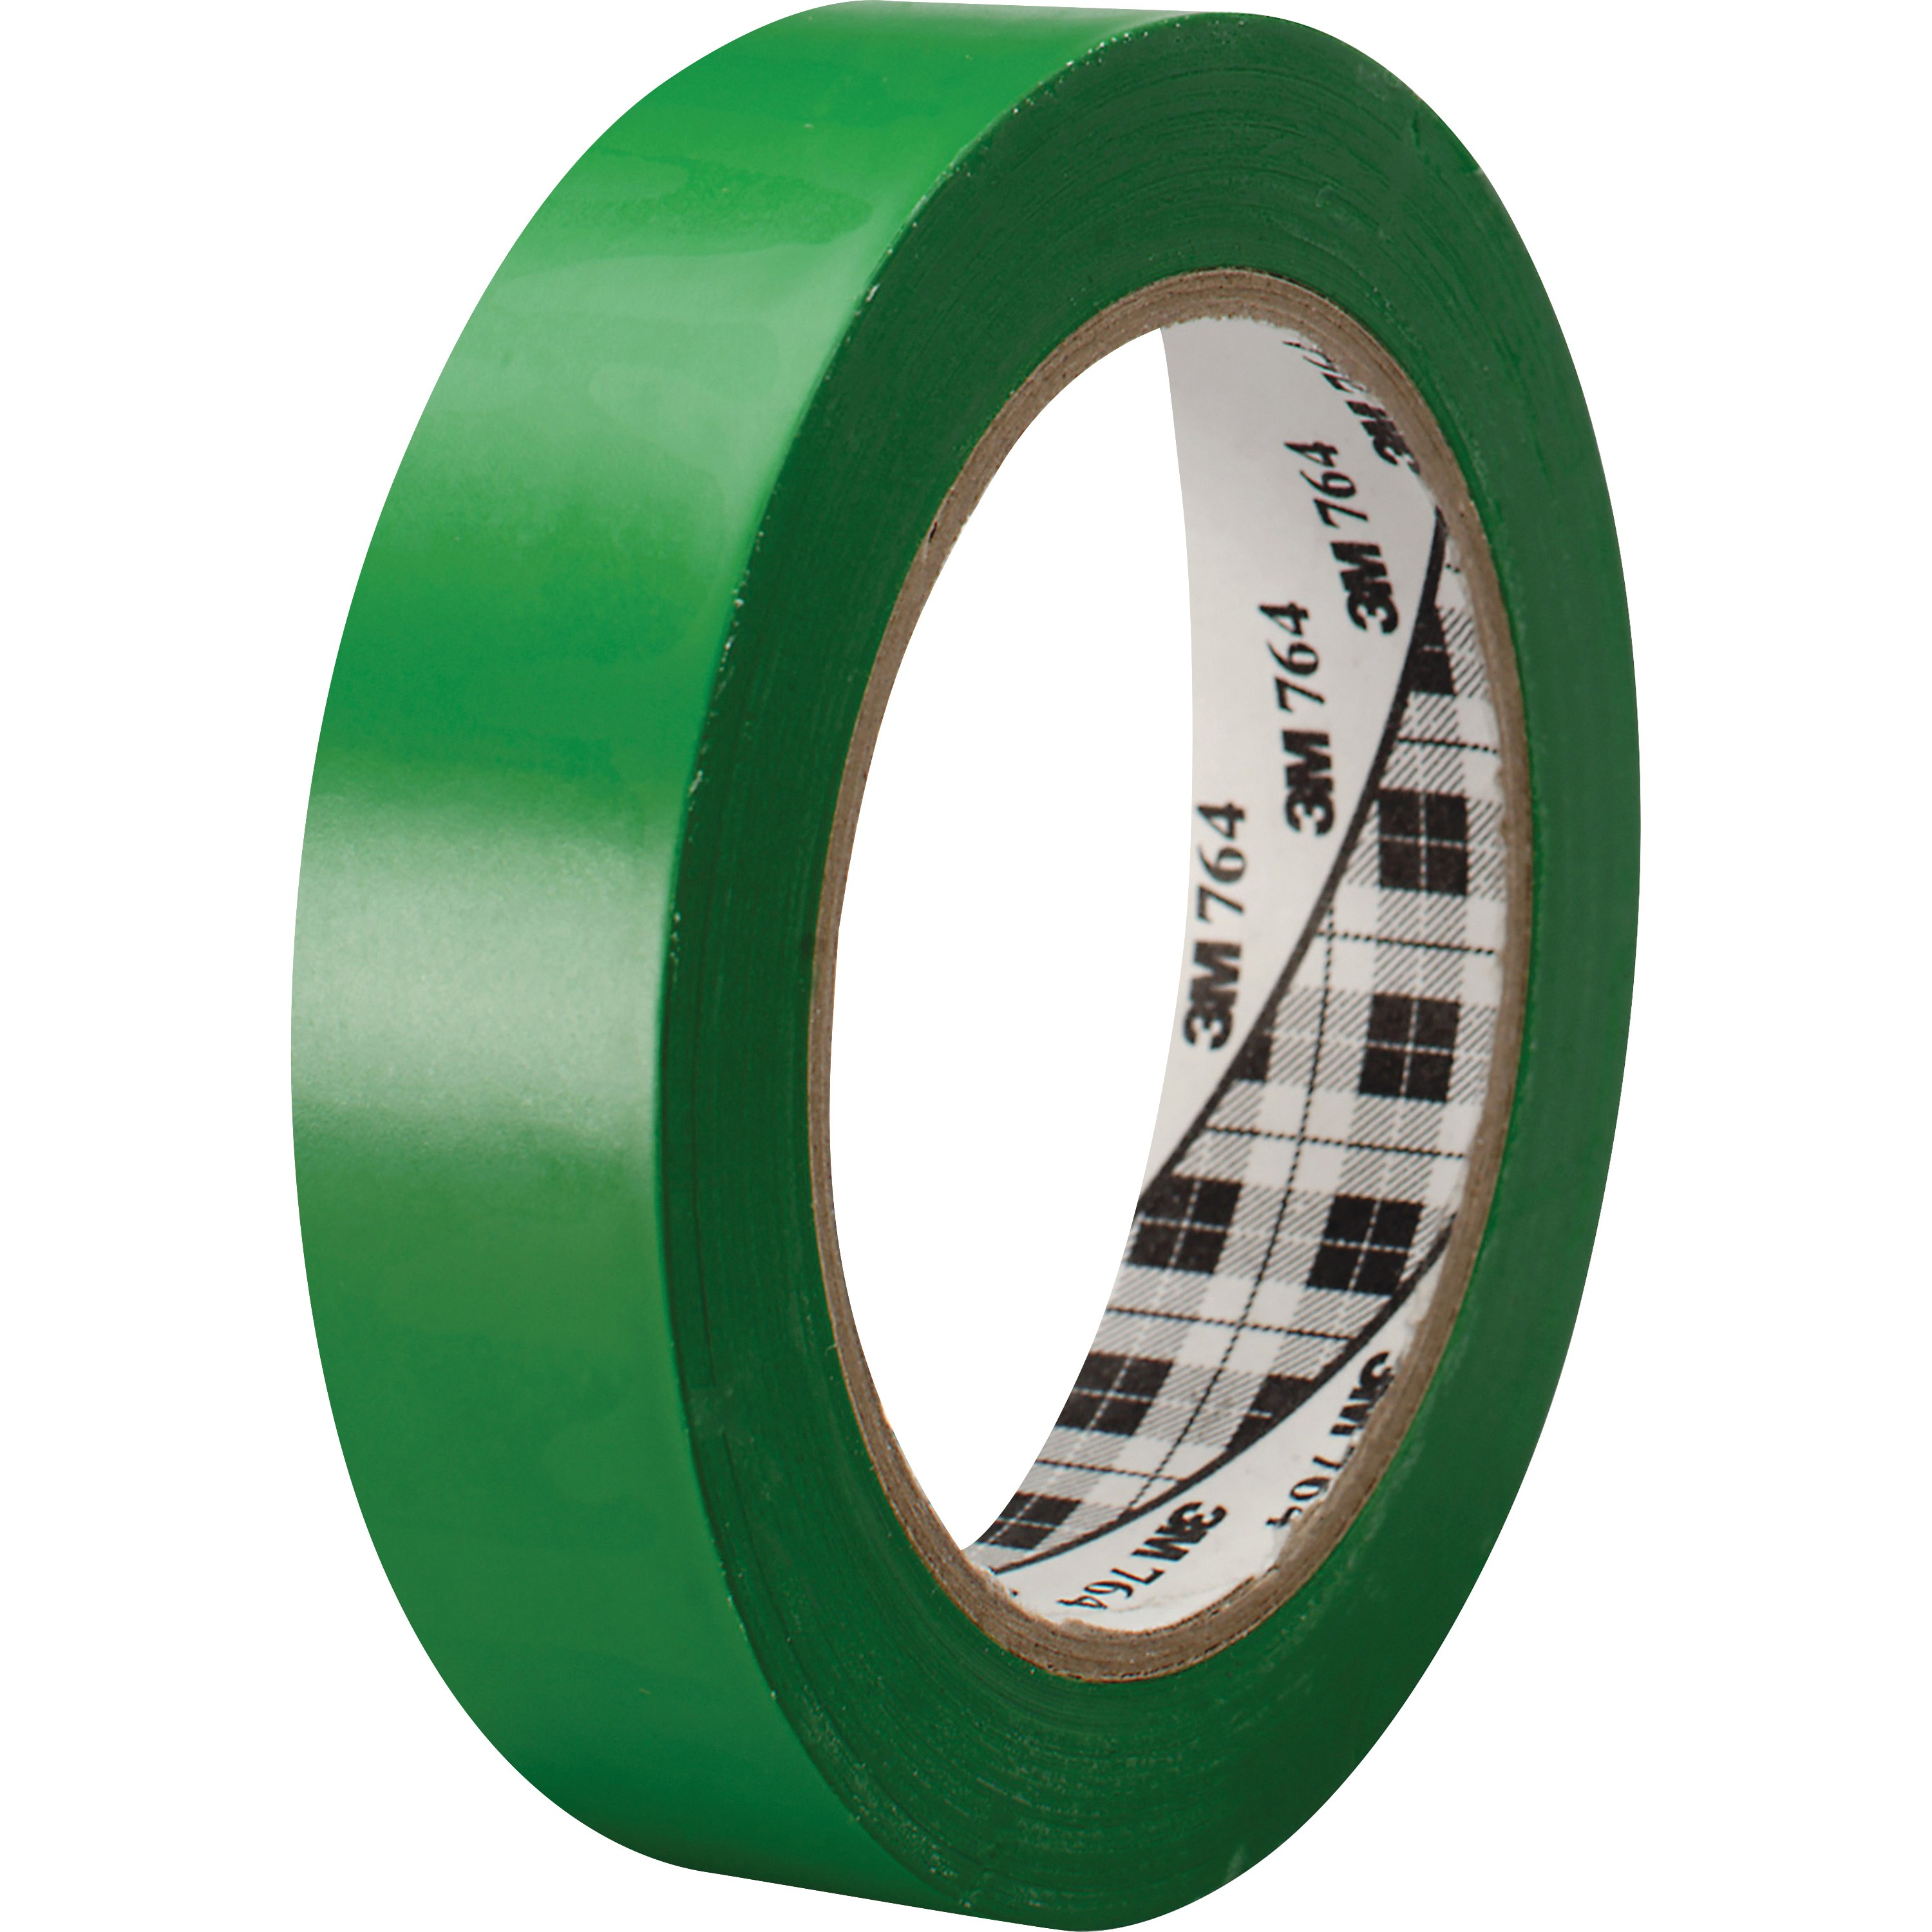 3M, MMM764136GRN, General-purpose 764 Color Vinyl Tape, 1 Roll, Green